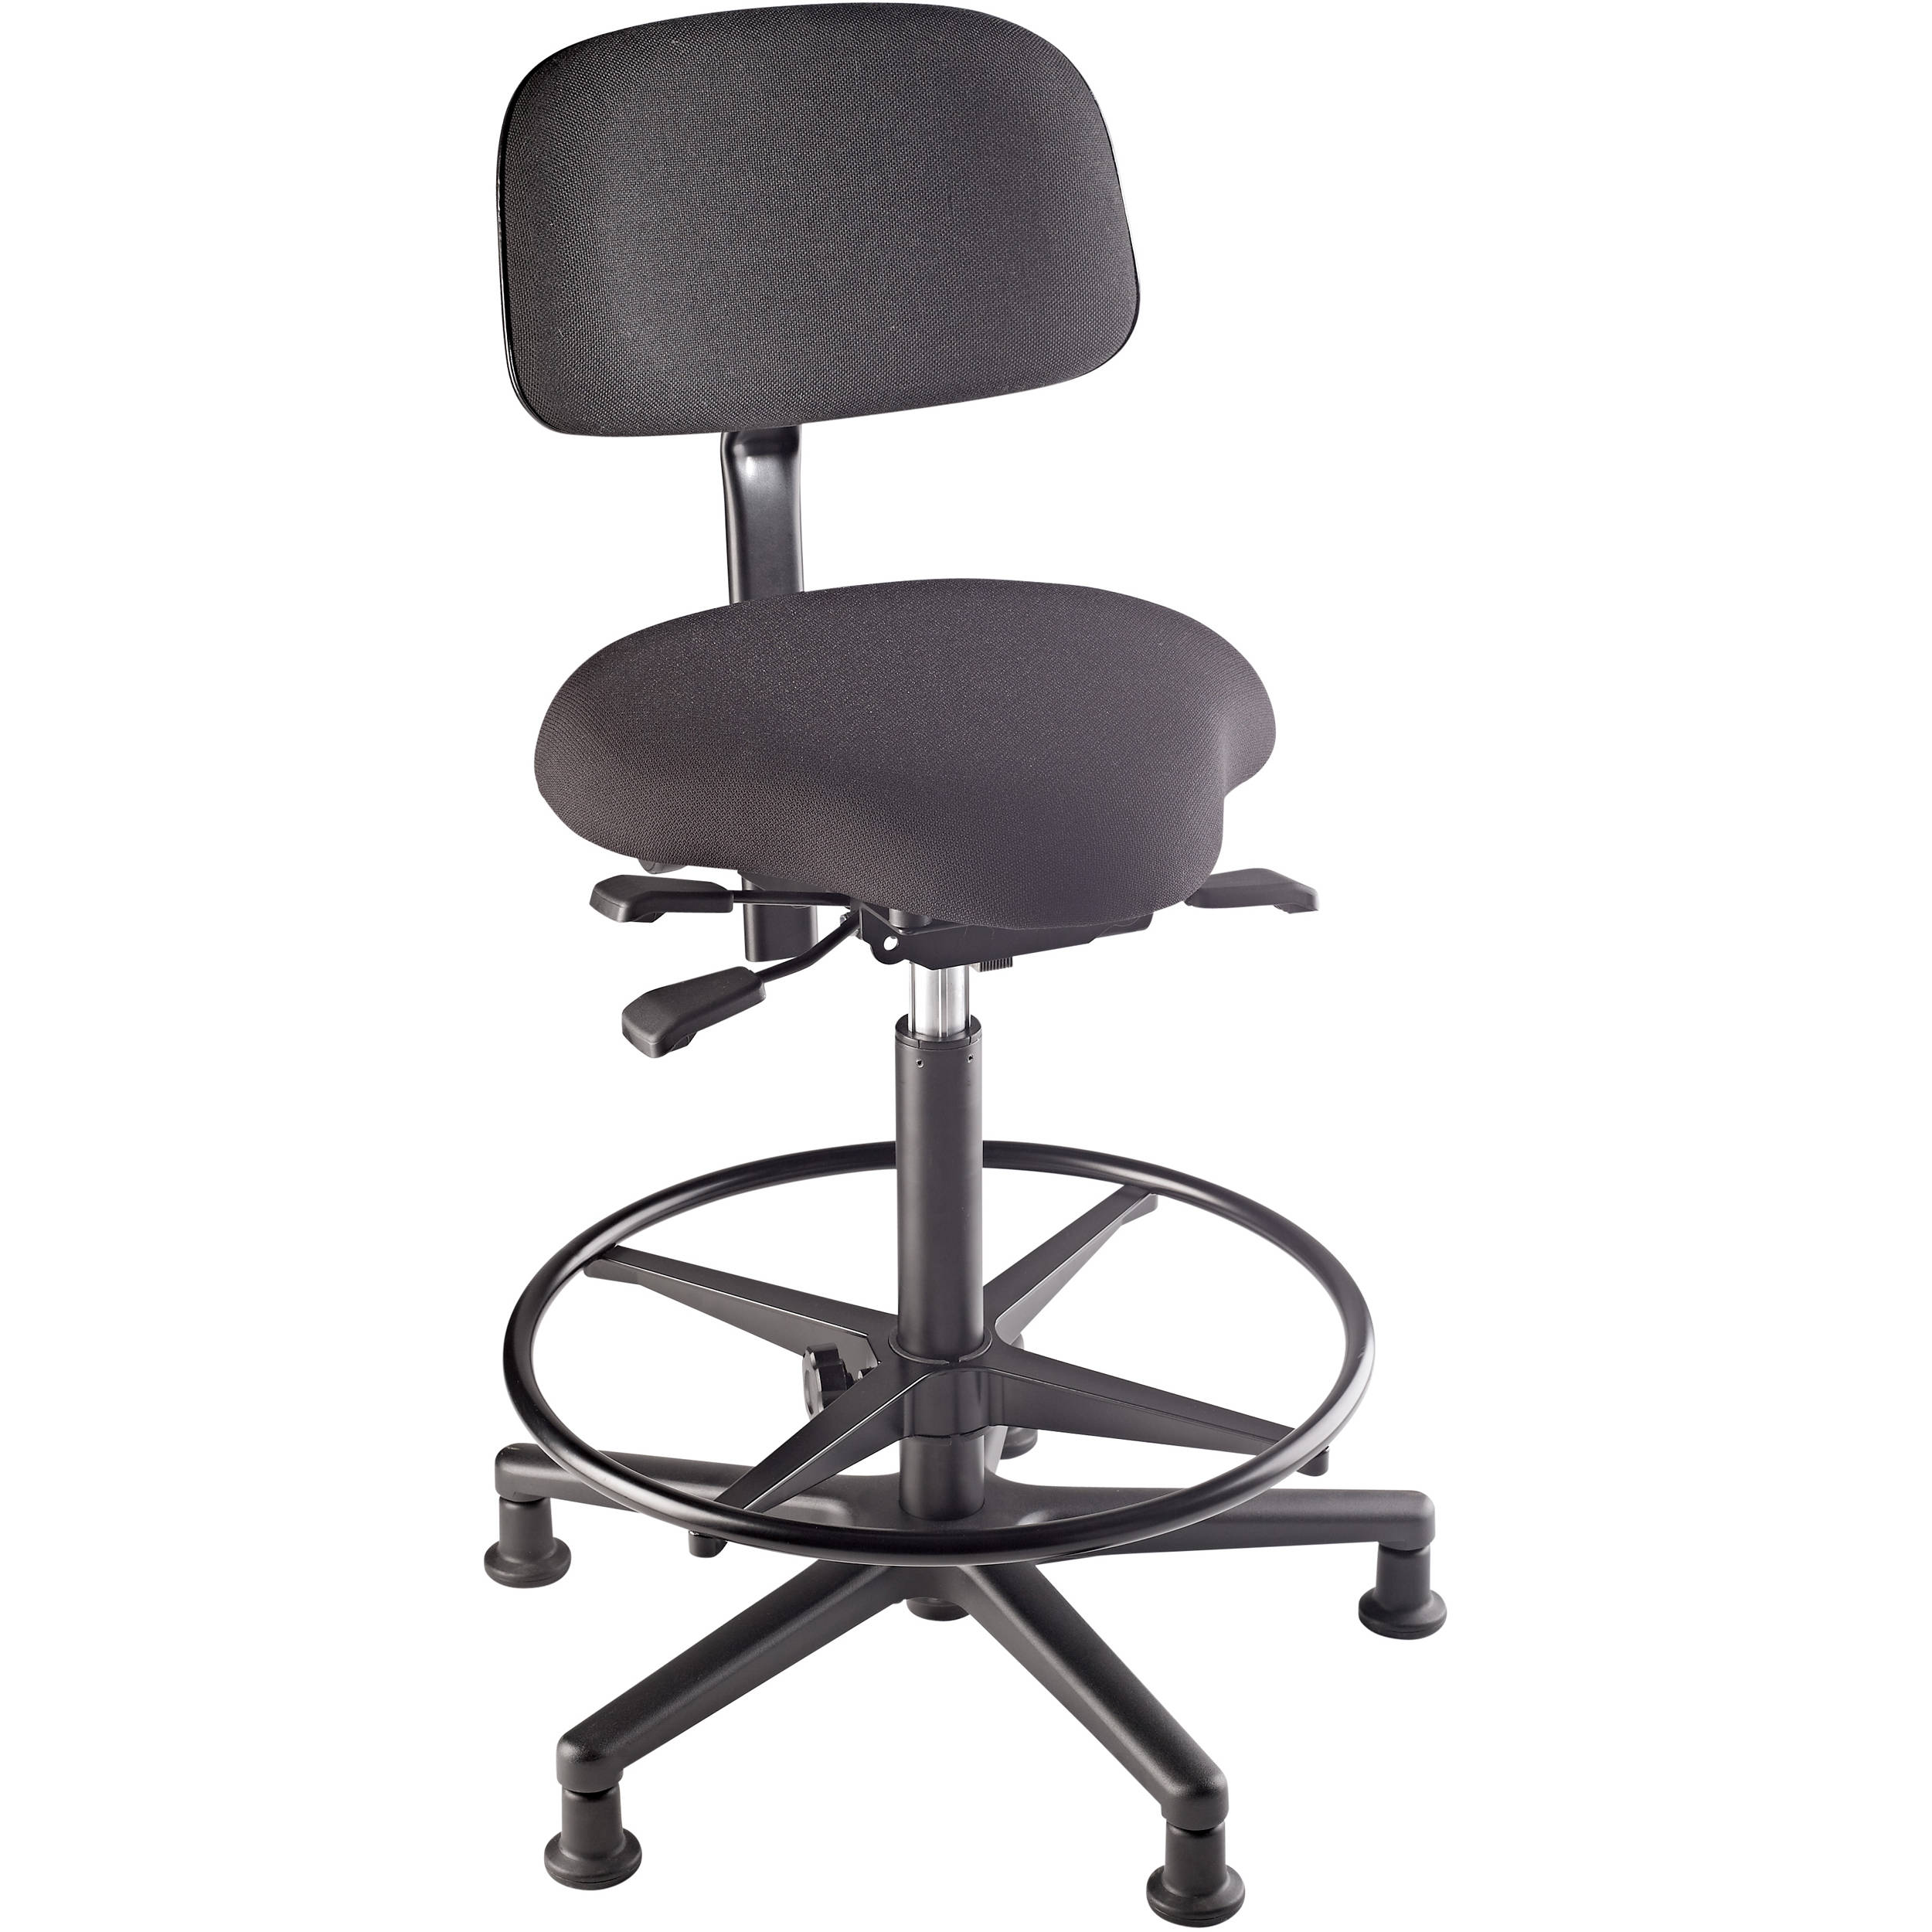 fully adjustable office chair. K\u0026M 13460 Fully-Adjustable Bass Stool With Upholstered Seat And Backrest (Black) Fully Adjustable Office Chair